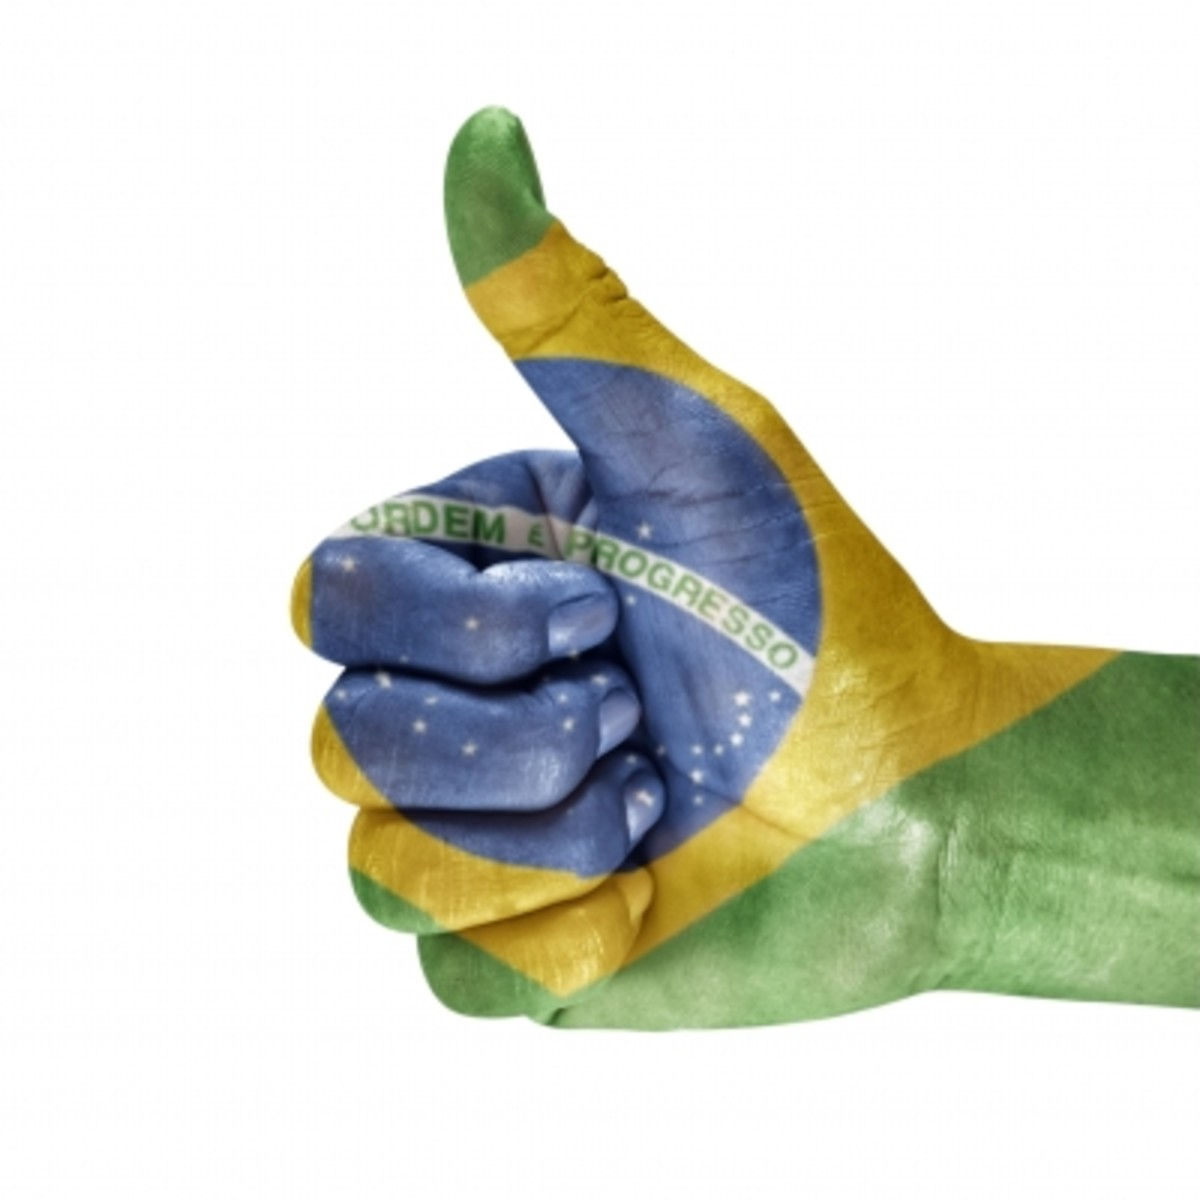 Do You Need a Brazilian Visa?